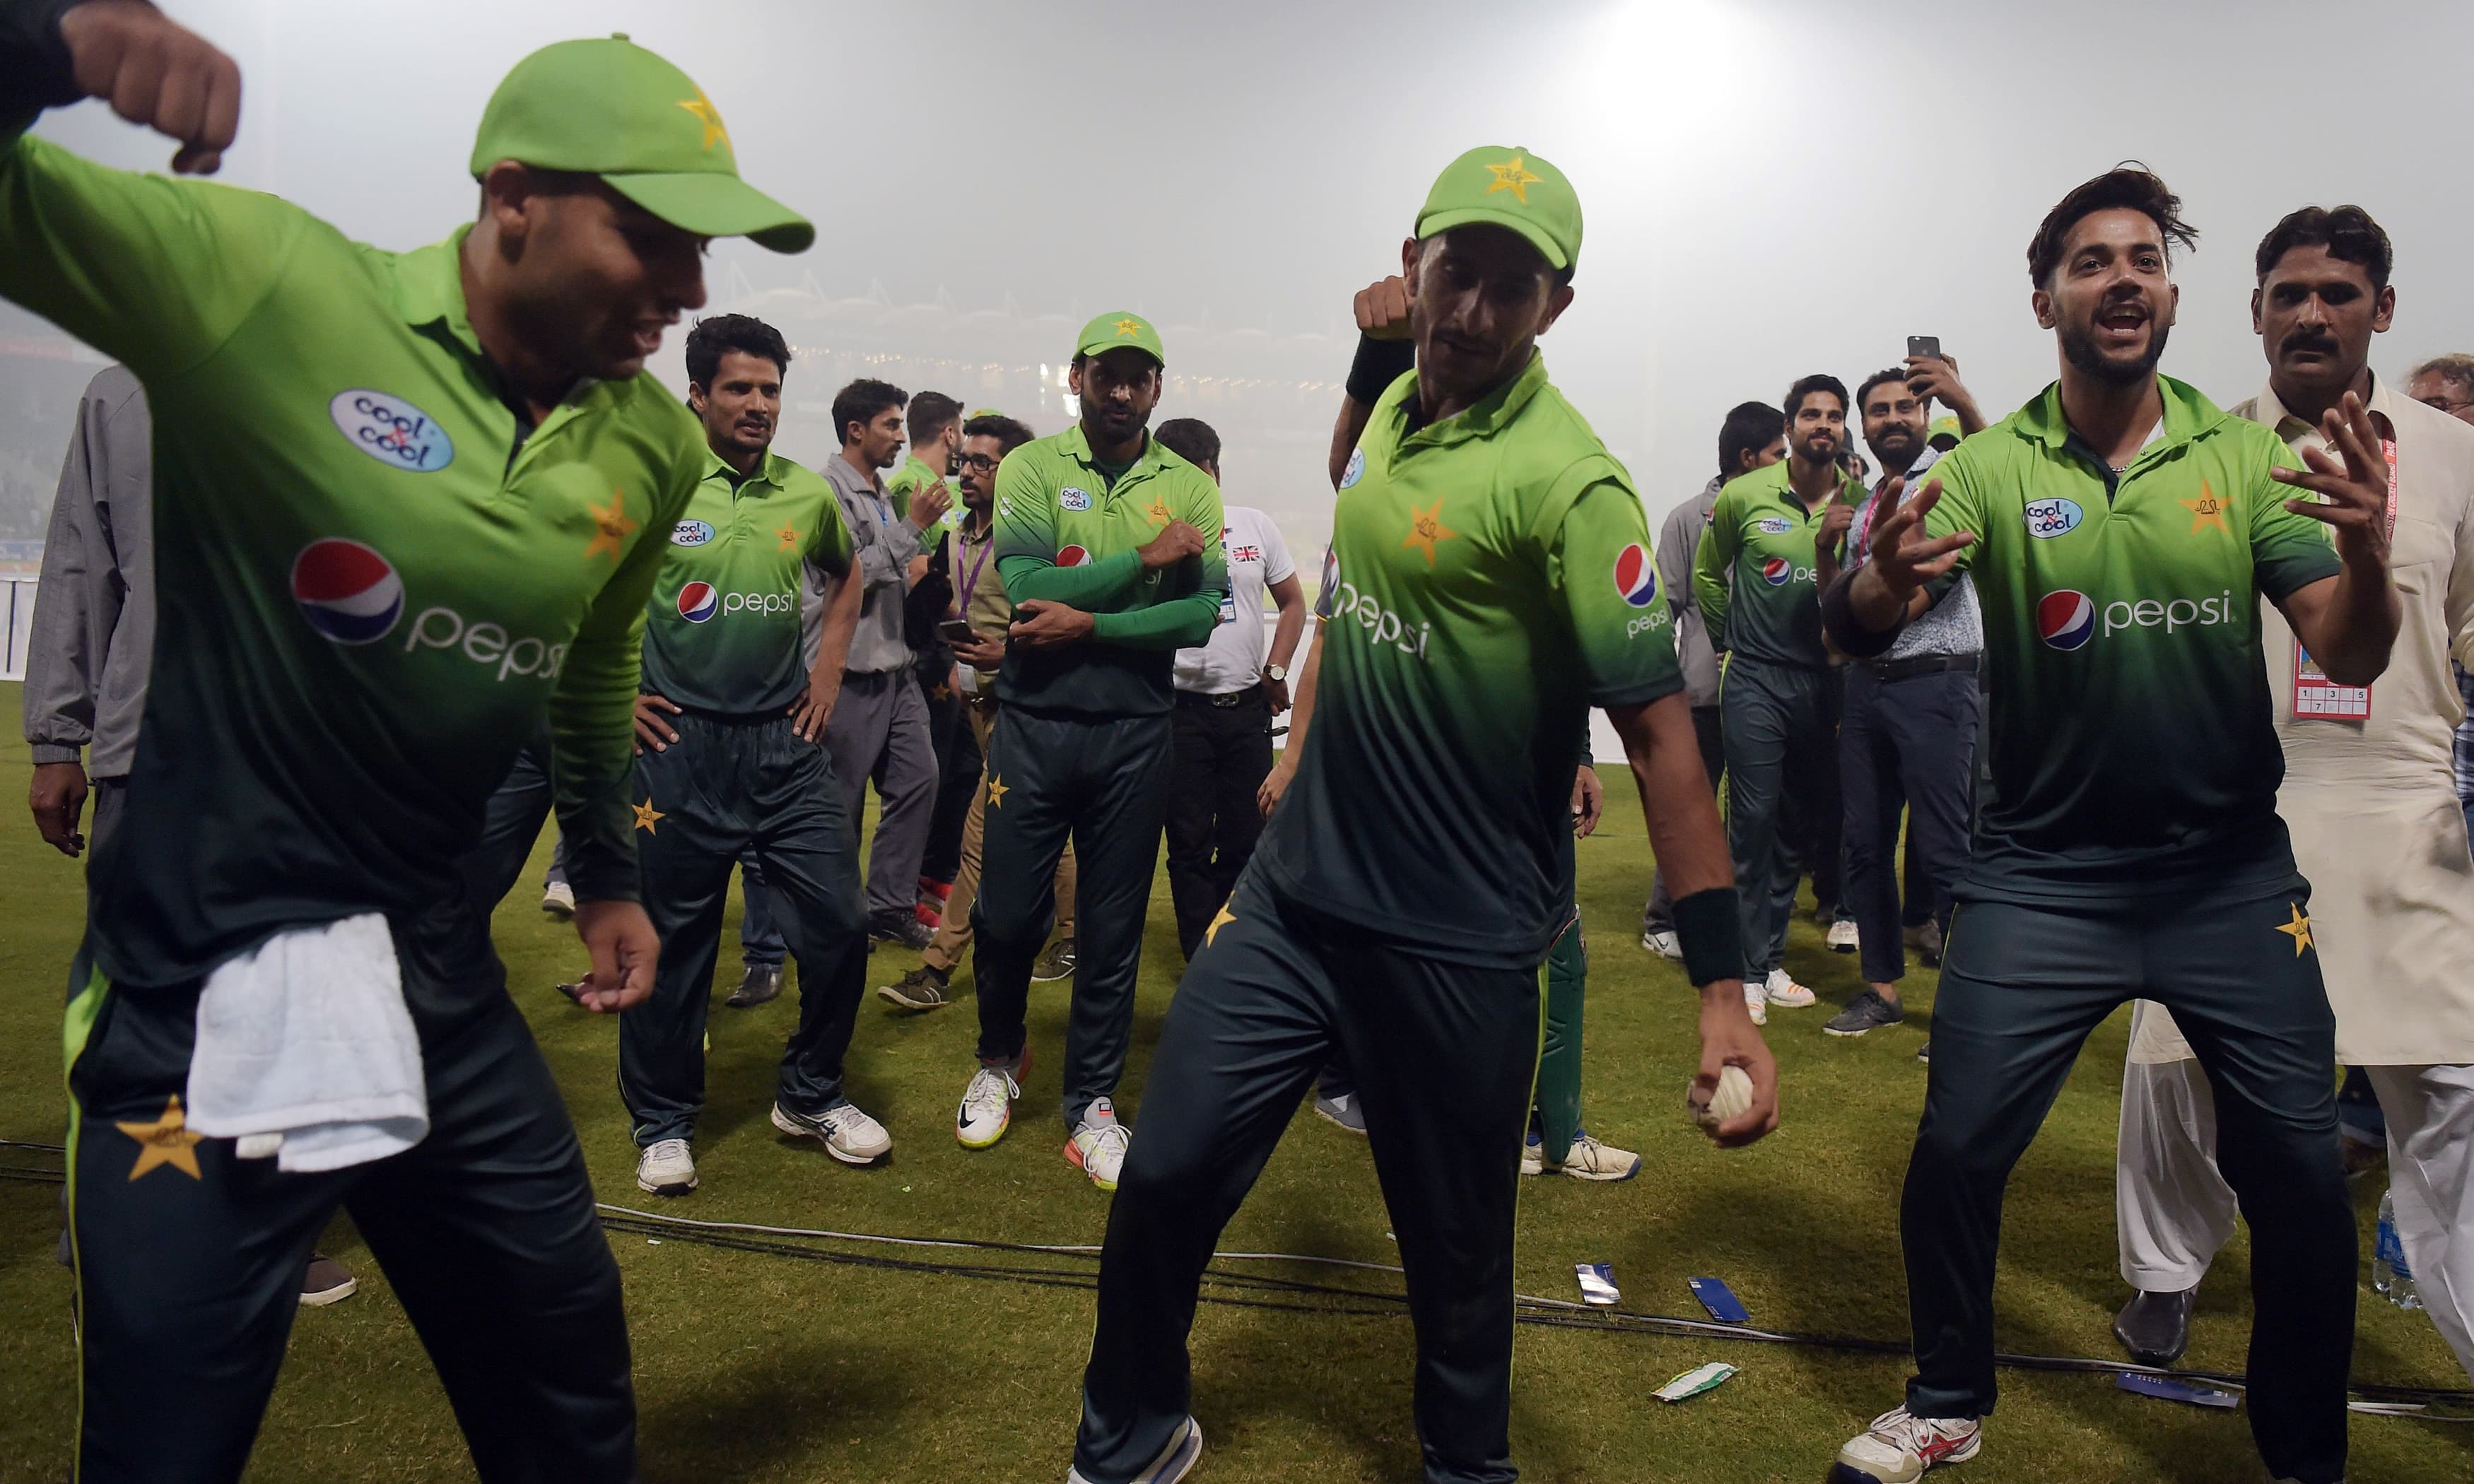 Players celebrate after winning the third and final T20 cricket match against Sri Lanka at Gaddafi Cricket Stadium in Lahore.—AFP